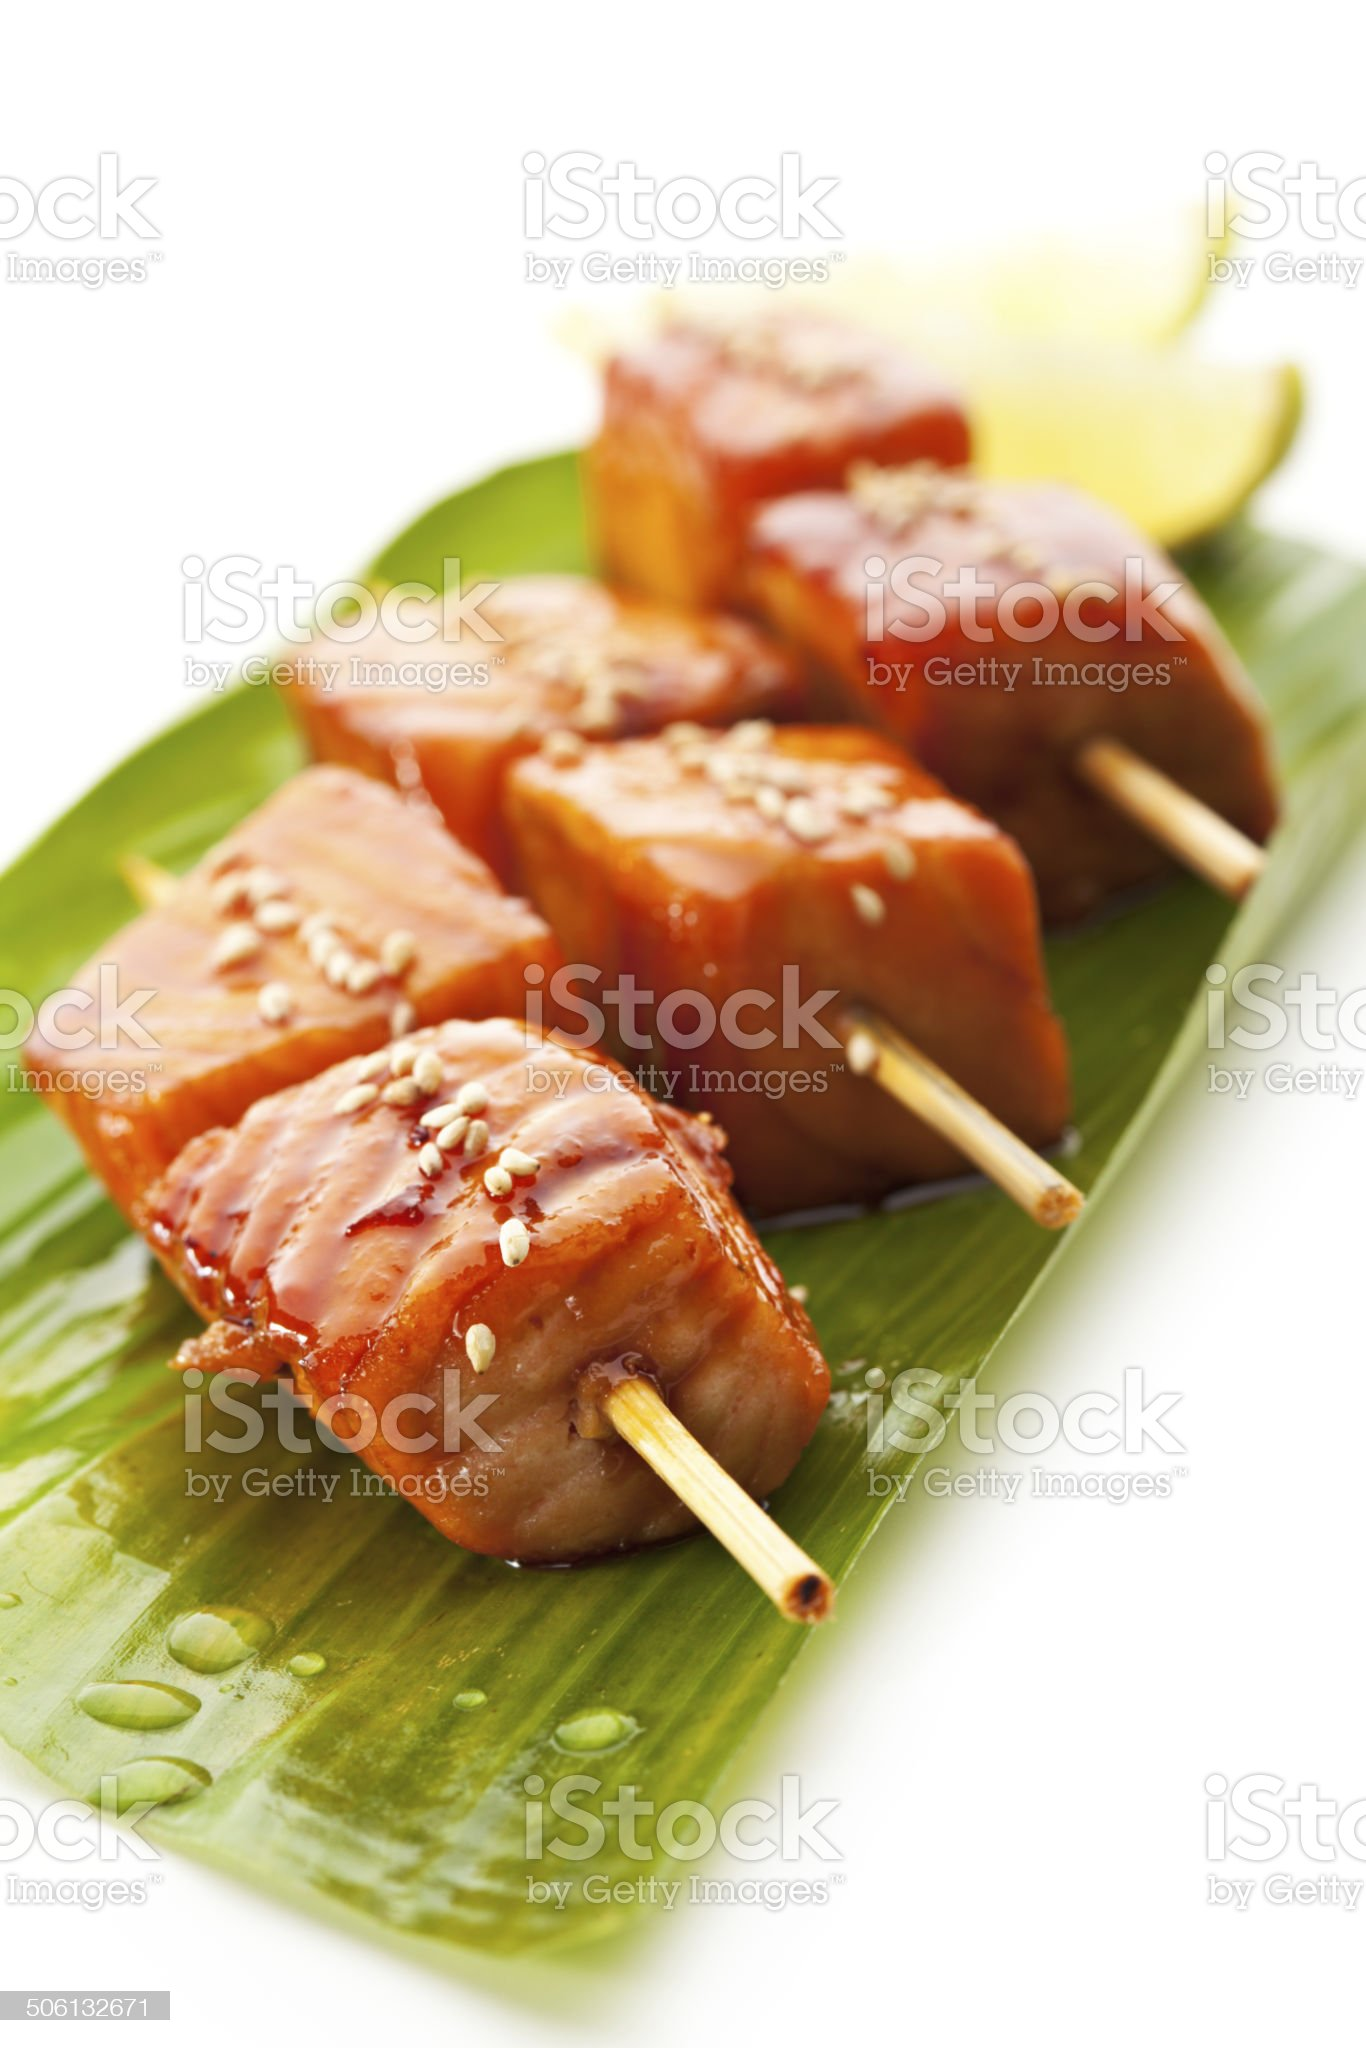 Grilled Foods royalty-free stock photo